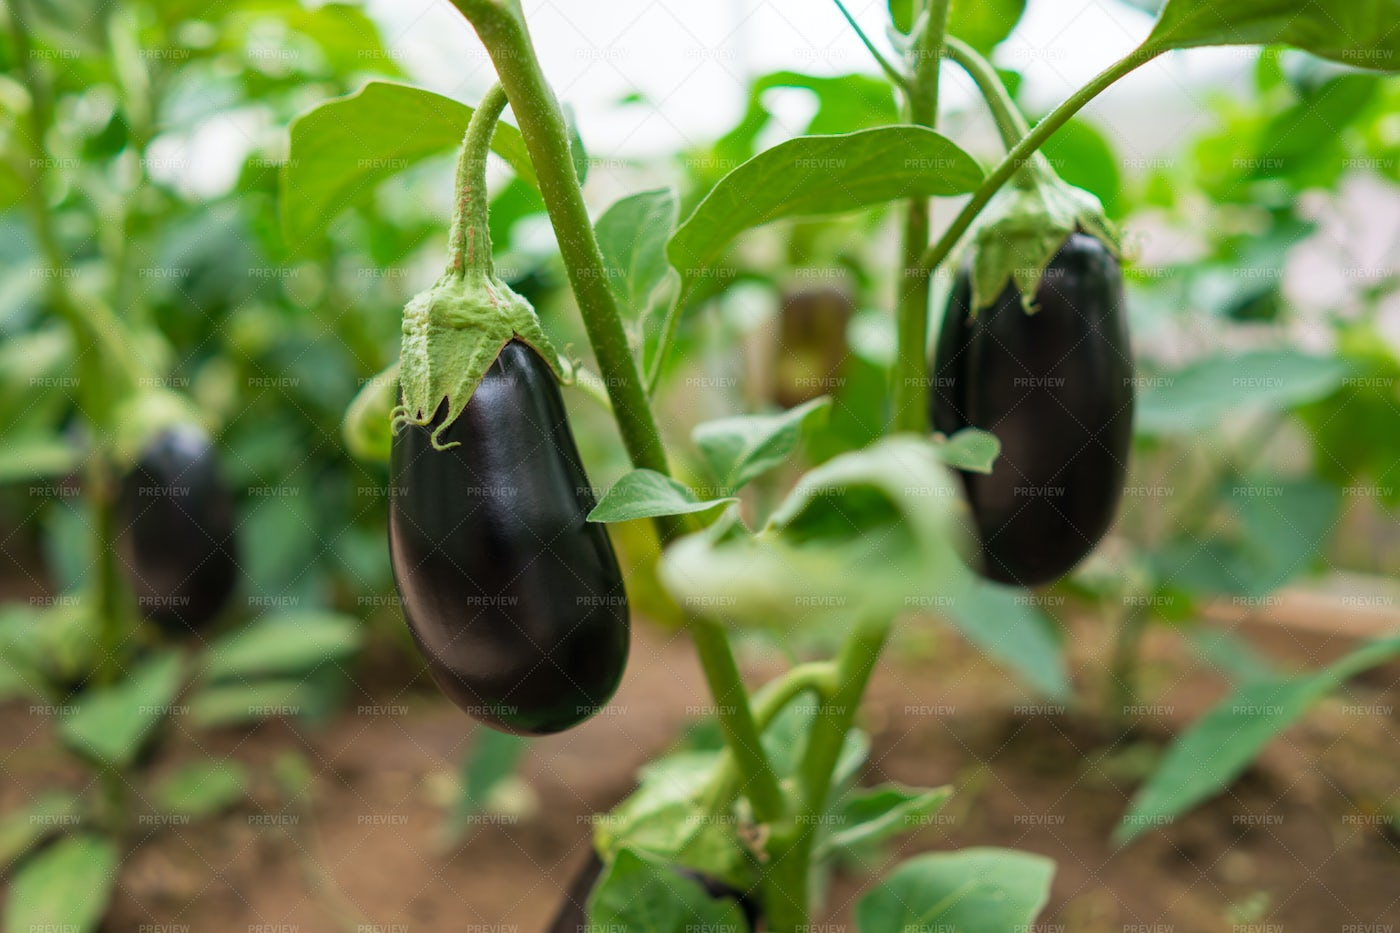 Nutrition Eggplants In A Greenhouse: Stock Photos